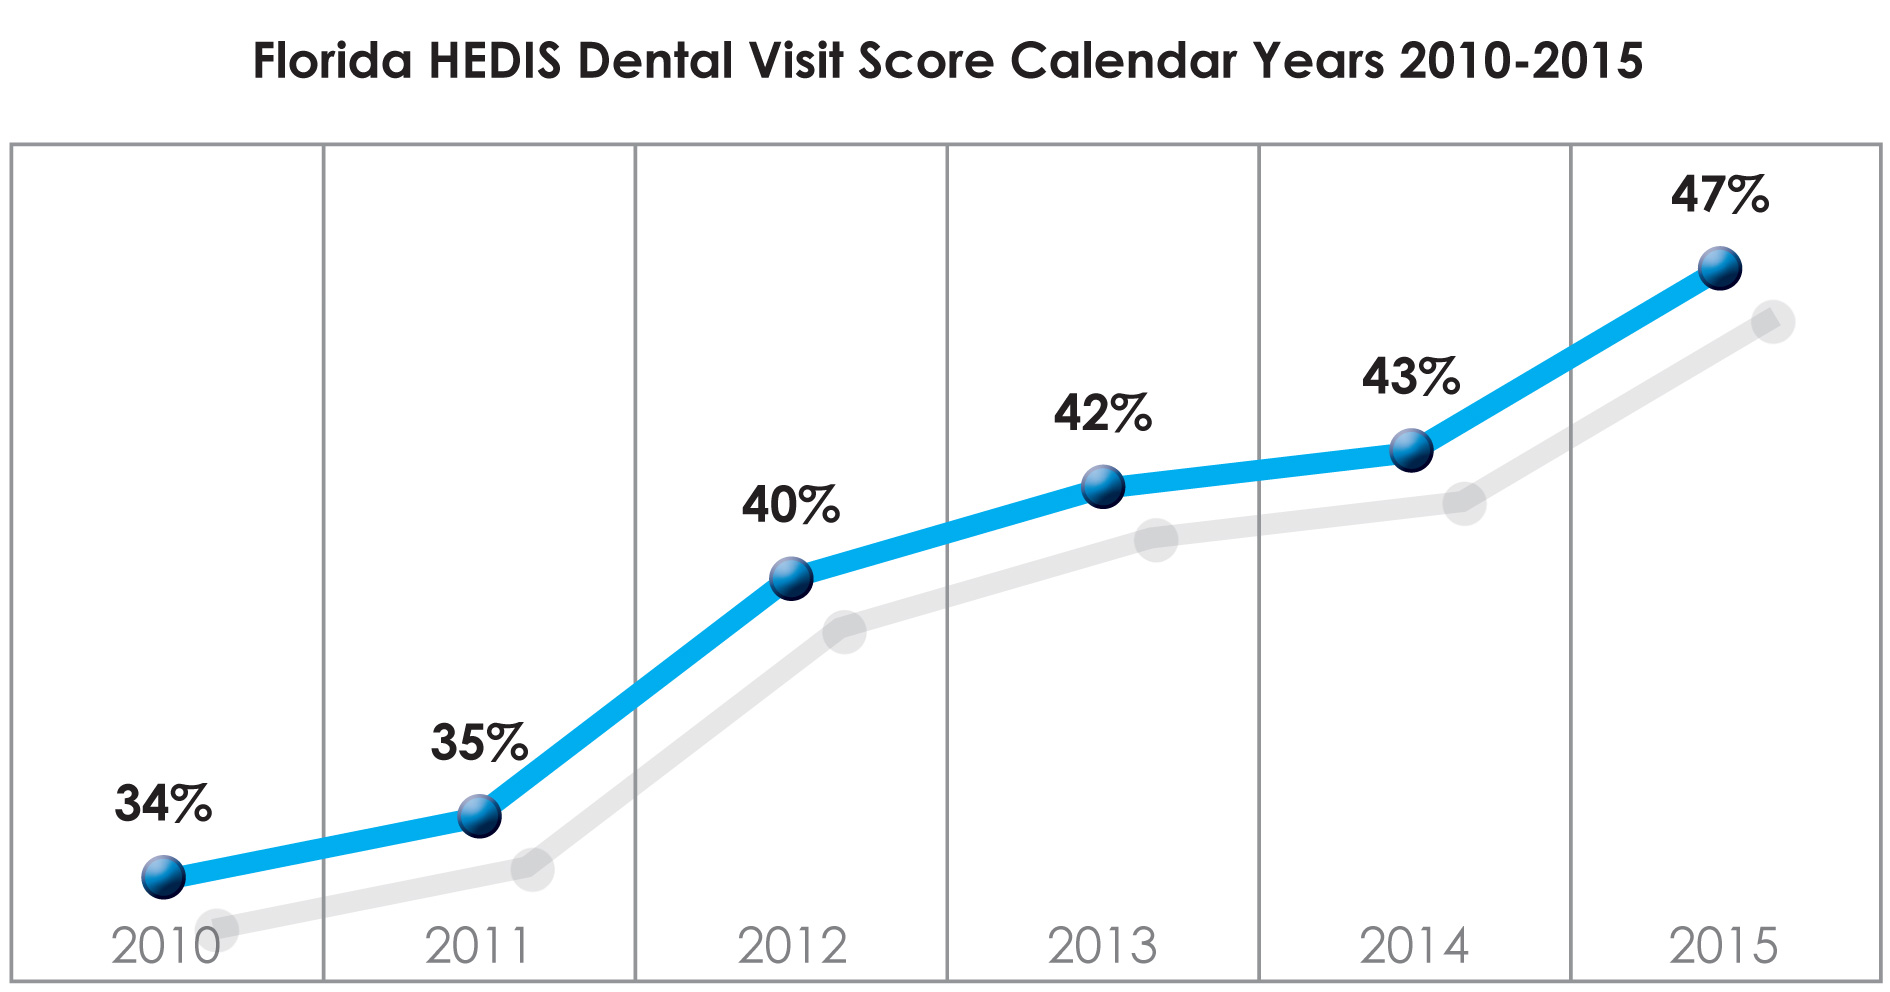 Liberty dental plan fl about liberty dental facts note mma year 2014 08012014 07312015 calculated by the agency using the same parameters required to calculate the hedis childrens dental care publicscrutiny Choice Image